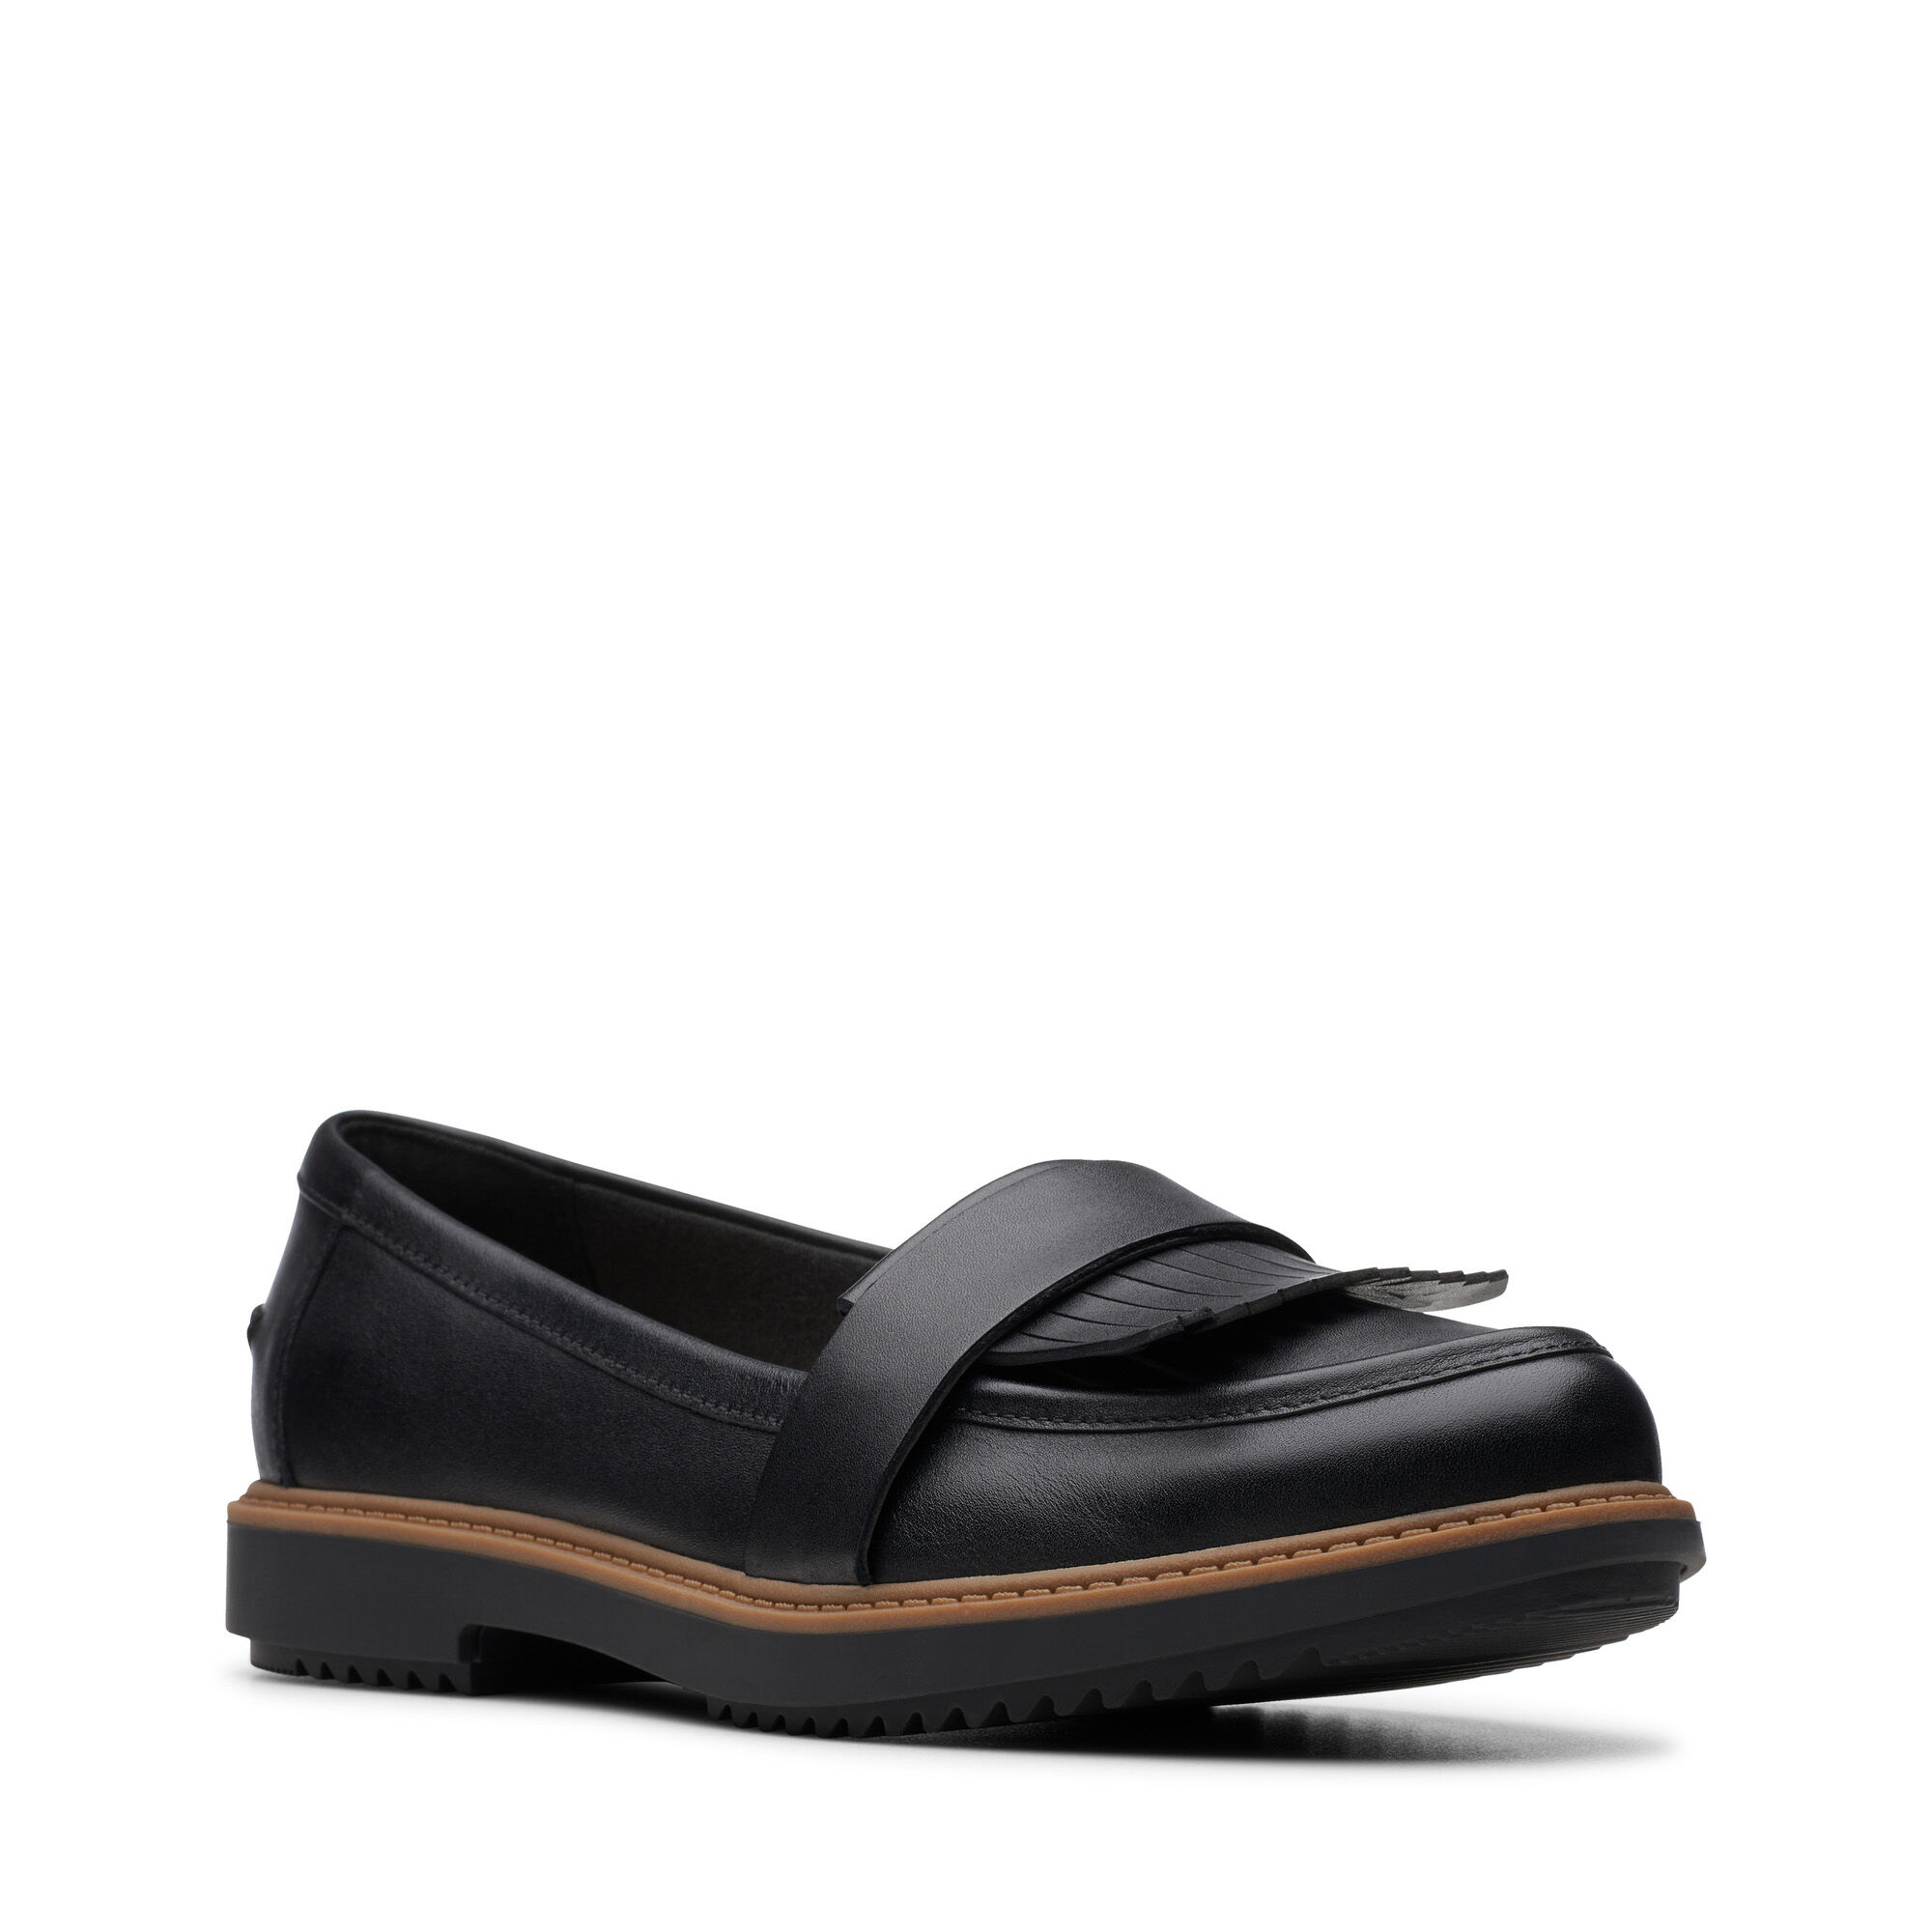 Women's Black Leather Flat Shoes Raisie Theresa | Clarks